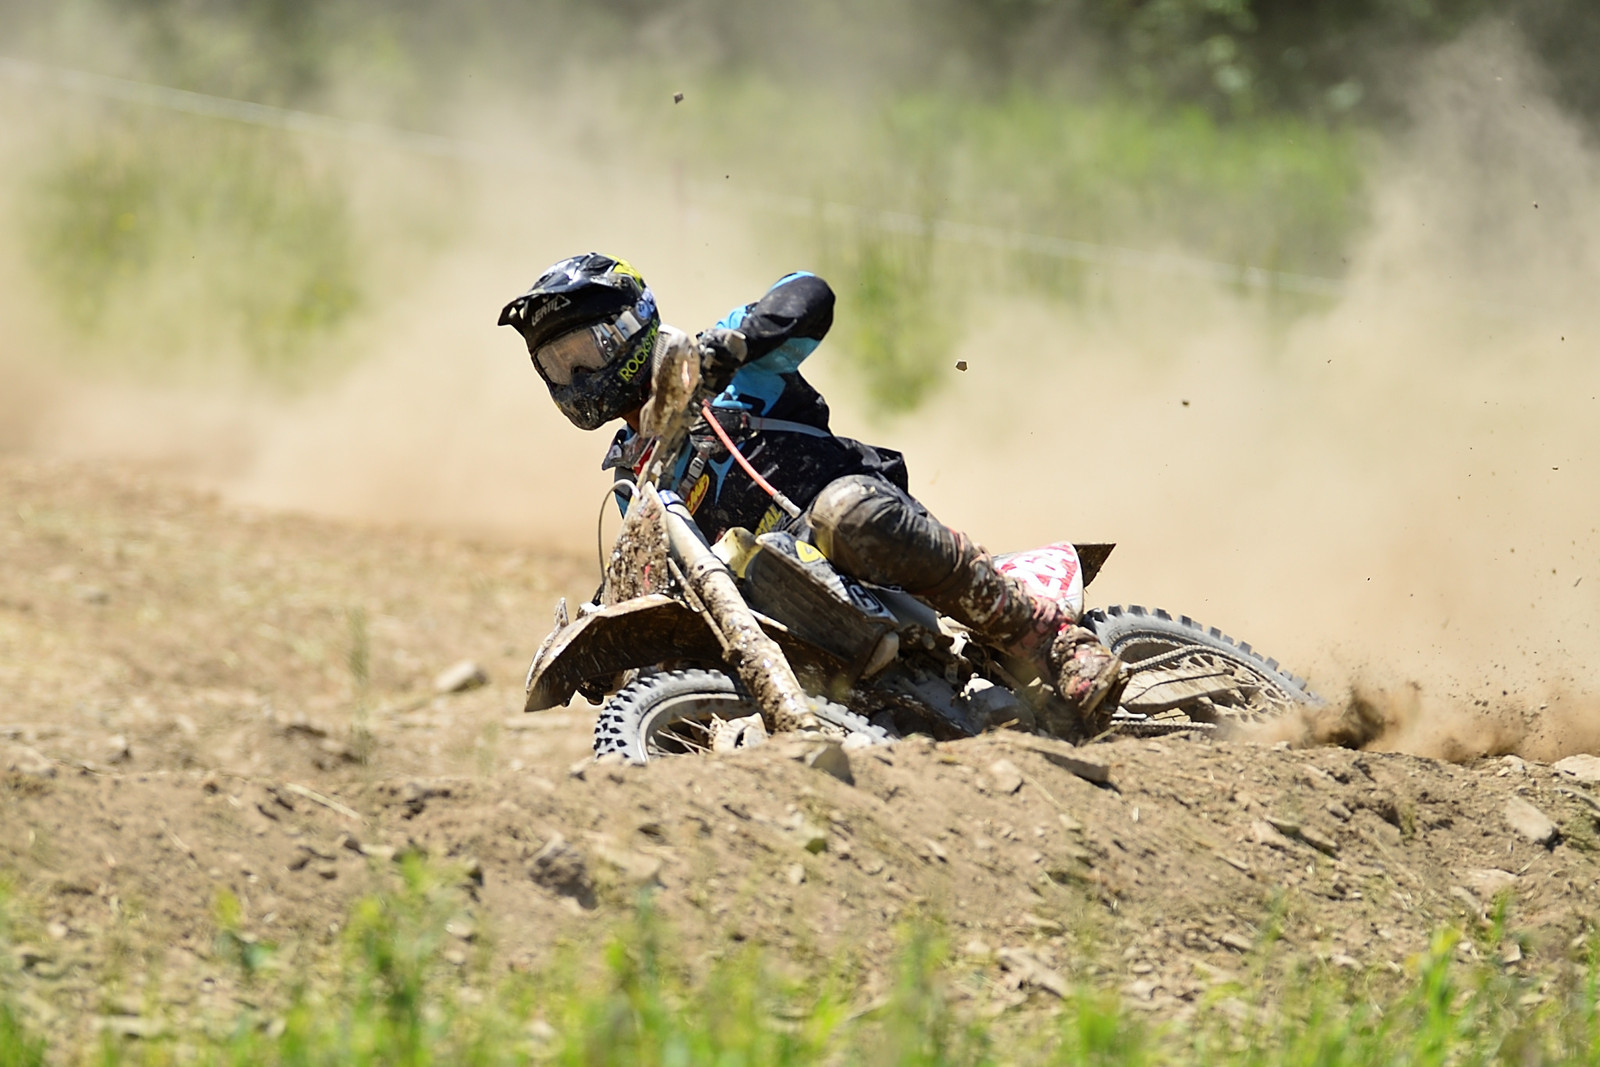 Ryan Sipes - Tomahawk GNCC - Motocross Pictures - Vital MX